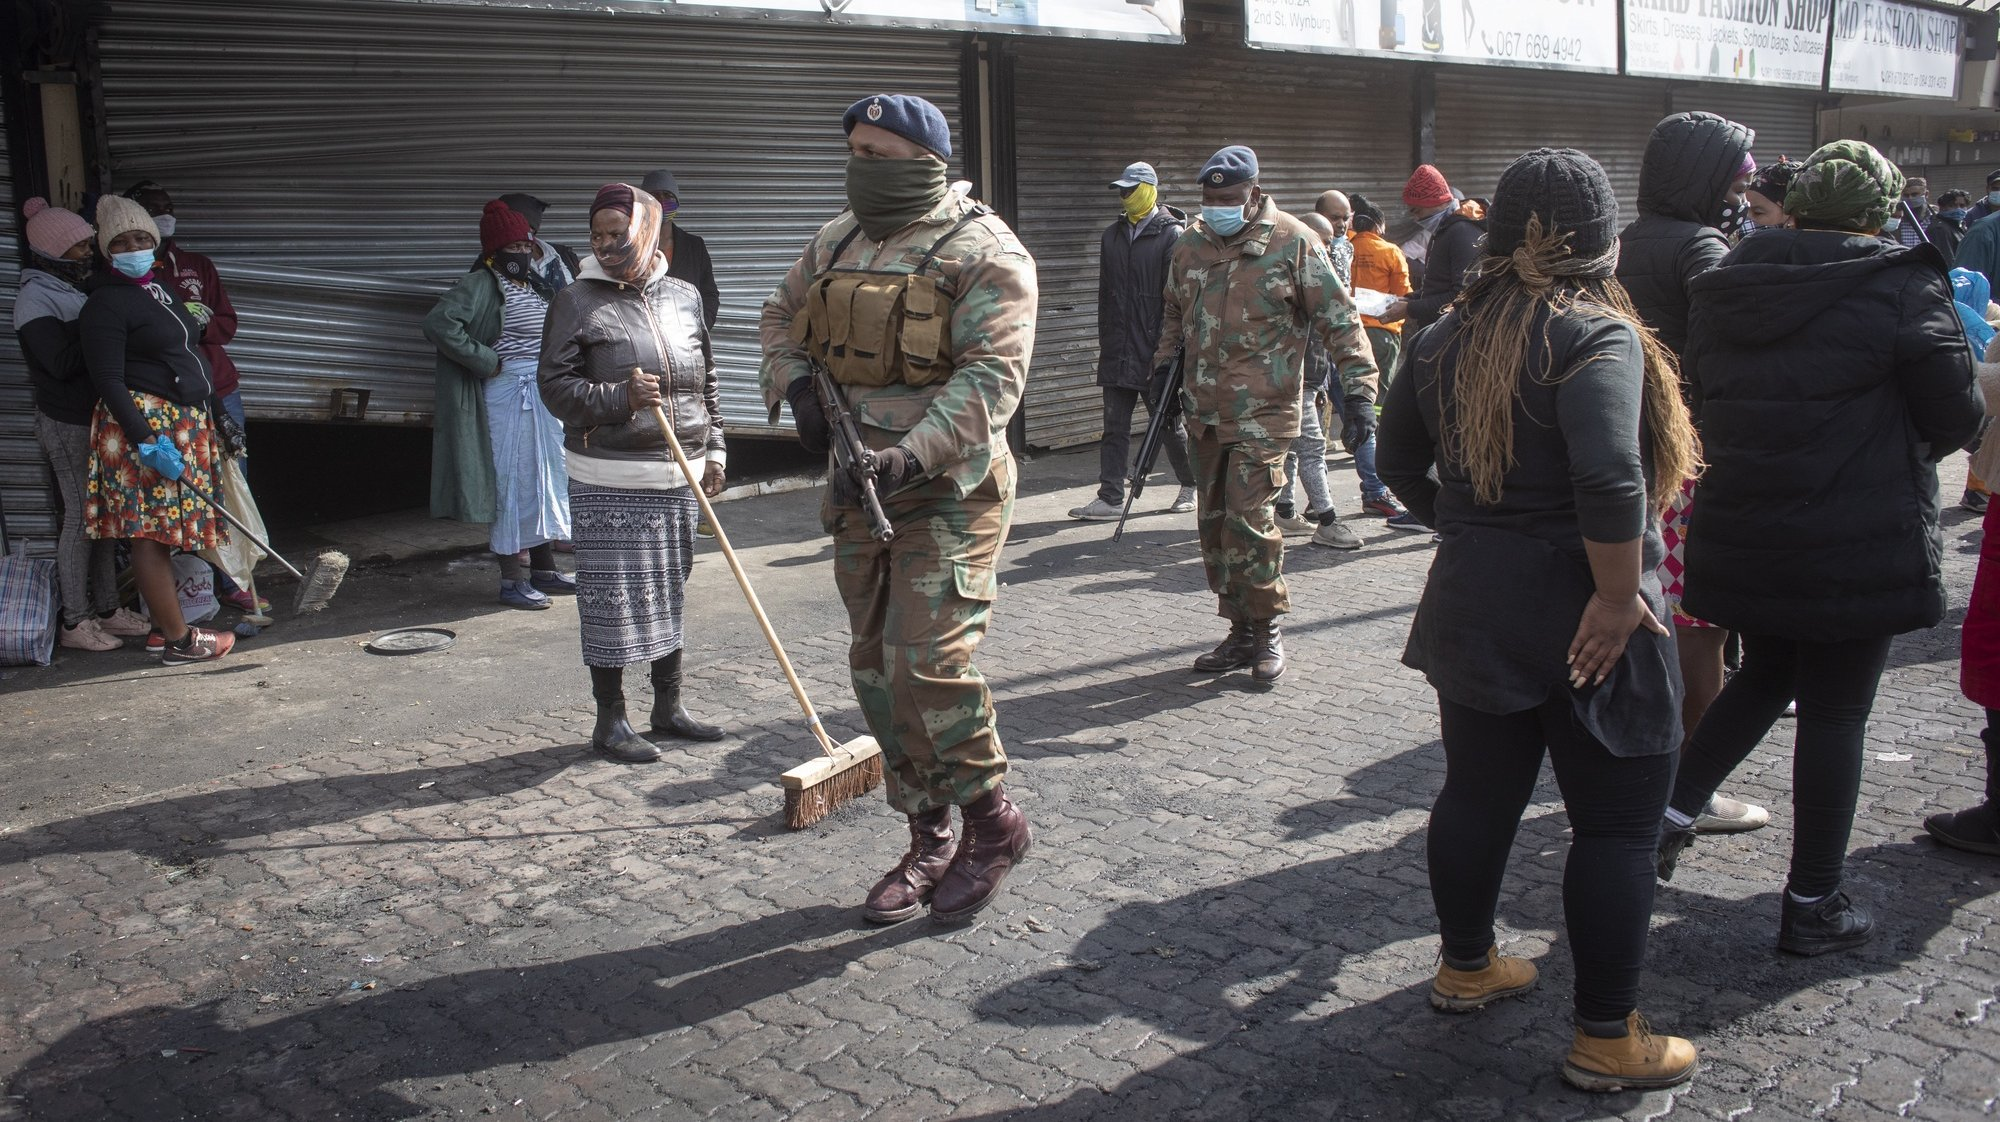 epa09345807 Soldiers from the South African Defense Force (SANDF) patrol the streets while local residents clean up the streets and local businesses after looting incidents in department stores and shops in Alexandra township, Johannesburg, South Africa, 15 July 2021. Days of looting and violence in both Johannesburg and Durban have caused billions of Rands of damage as an estimated 200 shopping malls where affected.  EPA/KIM LUDBROOK